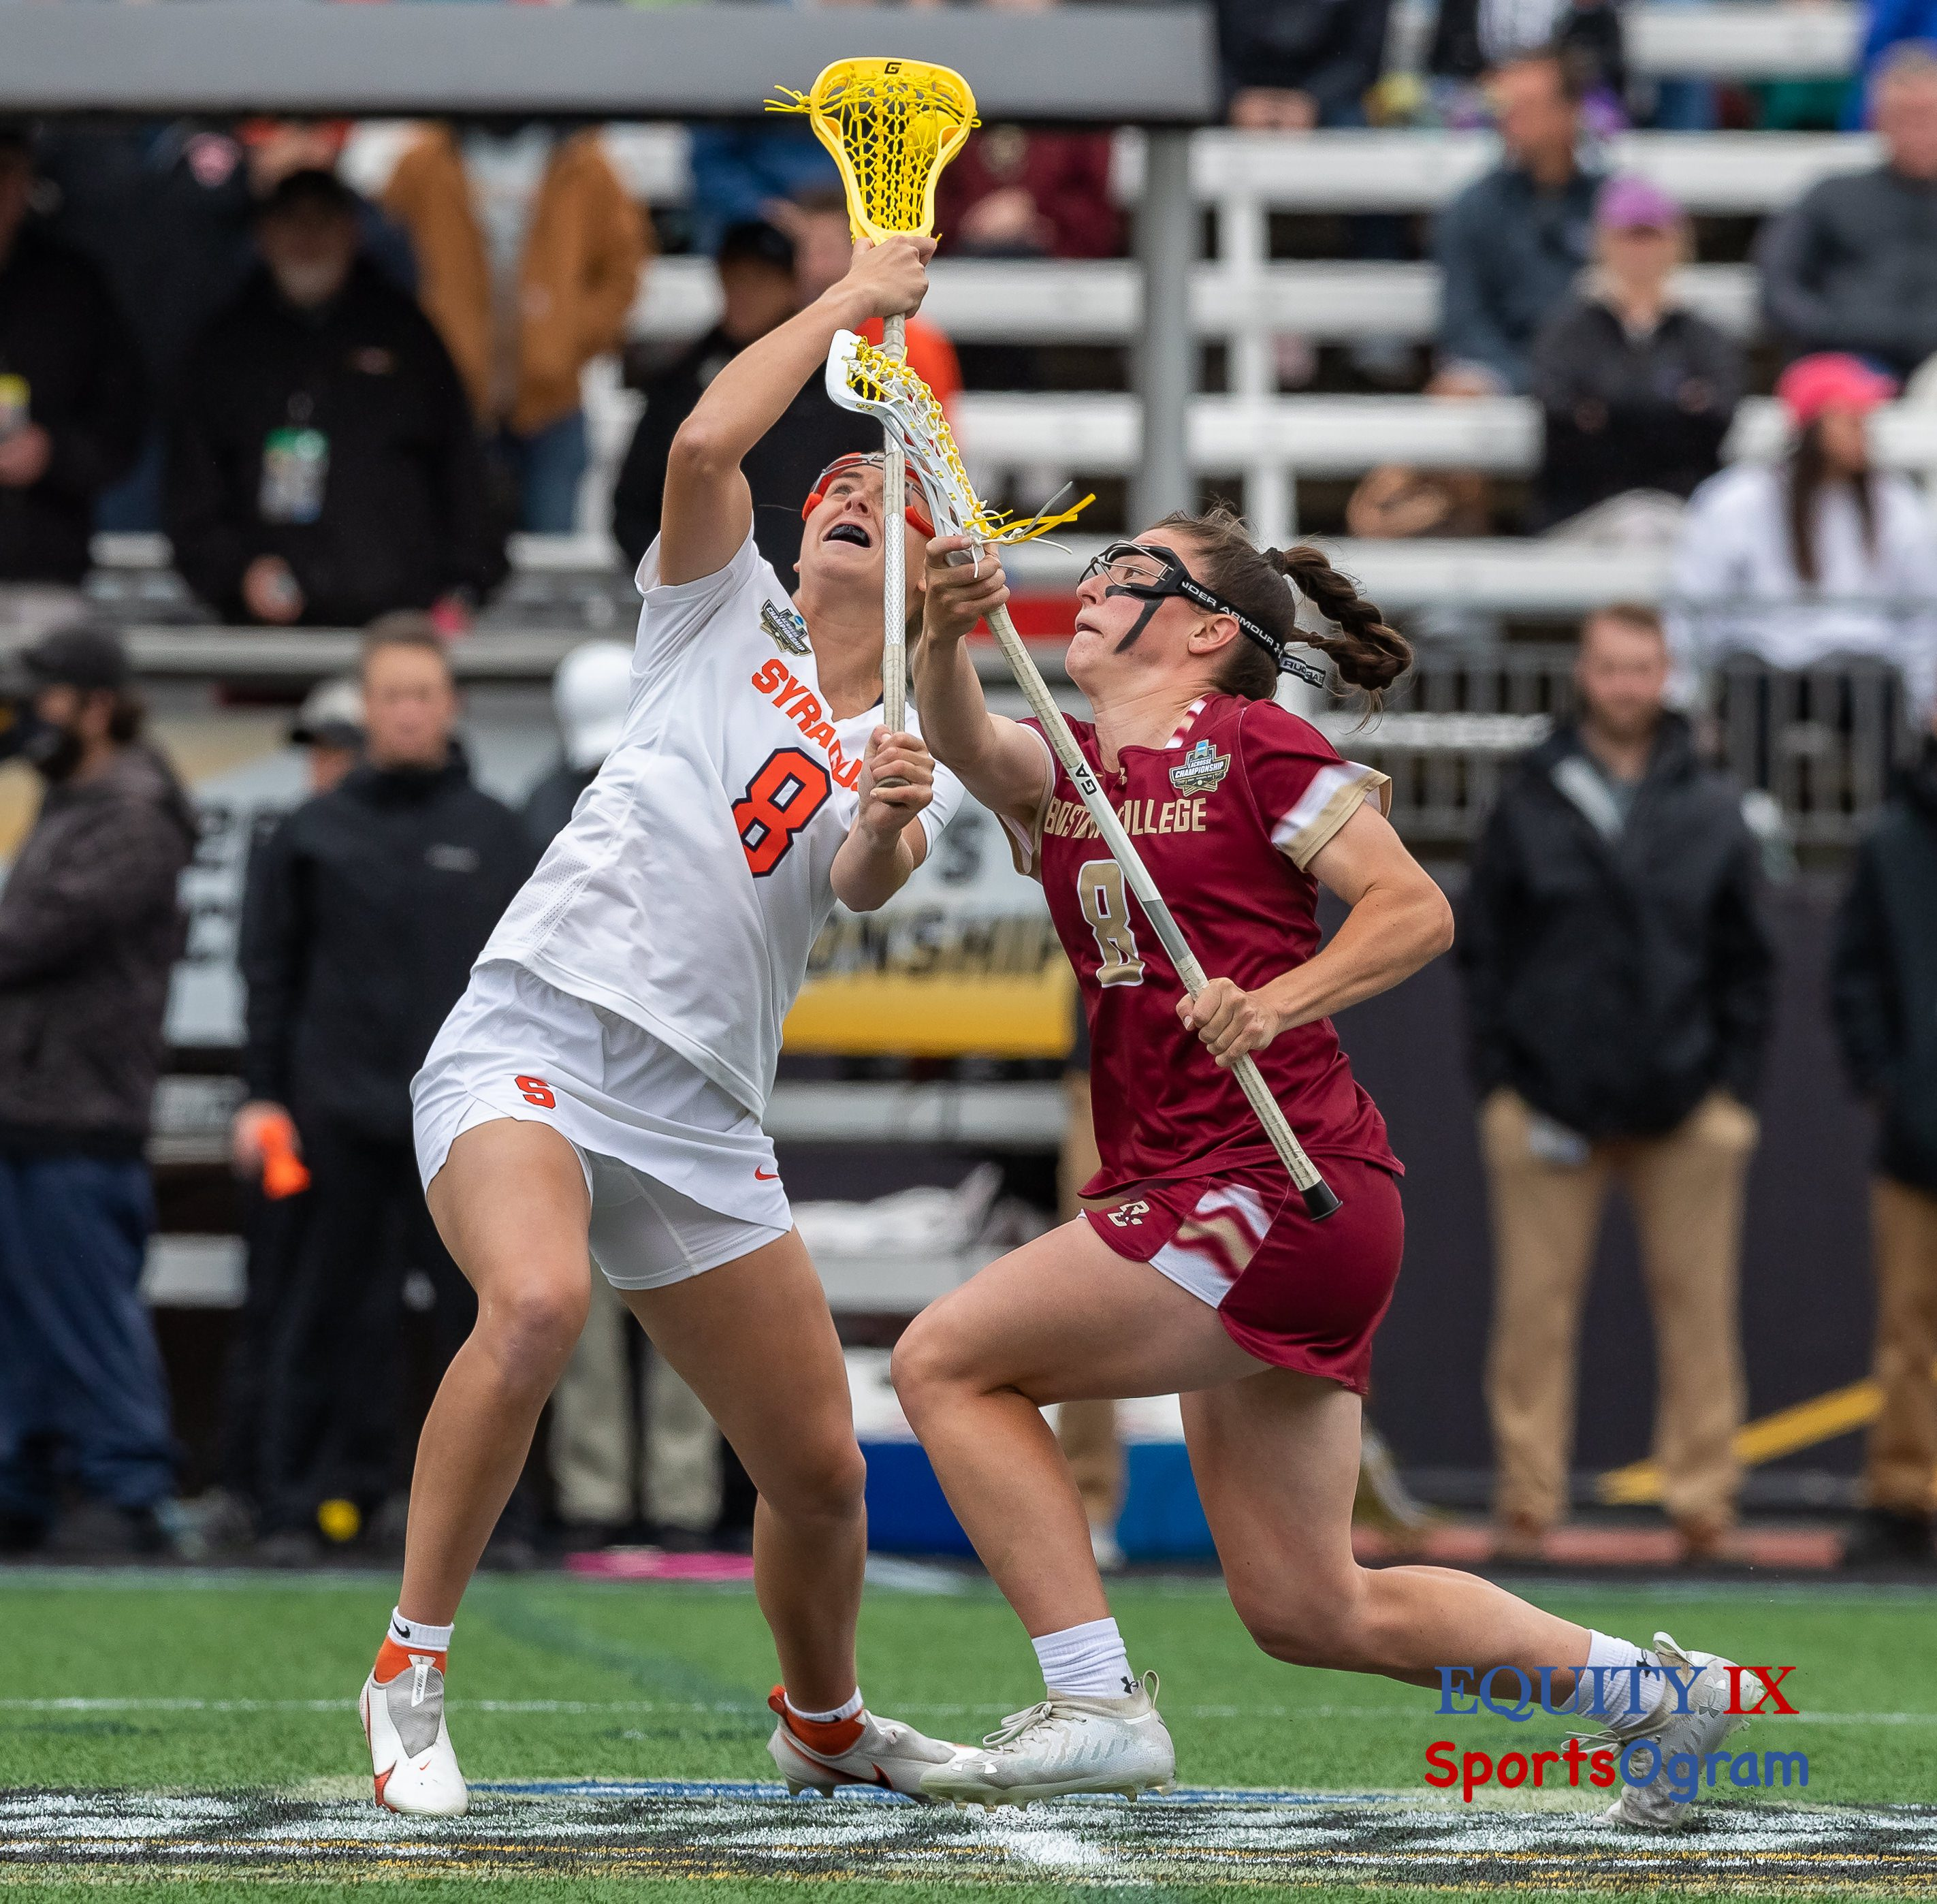 Two female lacrosse players draw a yellow lacrosse ball to start the 2021 NCAA Women's Lacrosse Championship Game - #8 Charlotte North (Boston College) vs #8 Syracuse - the yellow lacrosse ball is on the yellow strings of Syracuse player and flipping backwards over her shoulder © Equity IX - SportsOgram - Leigh Ernst Friestedt